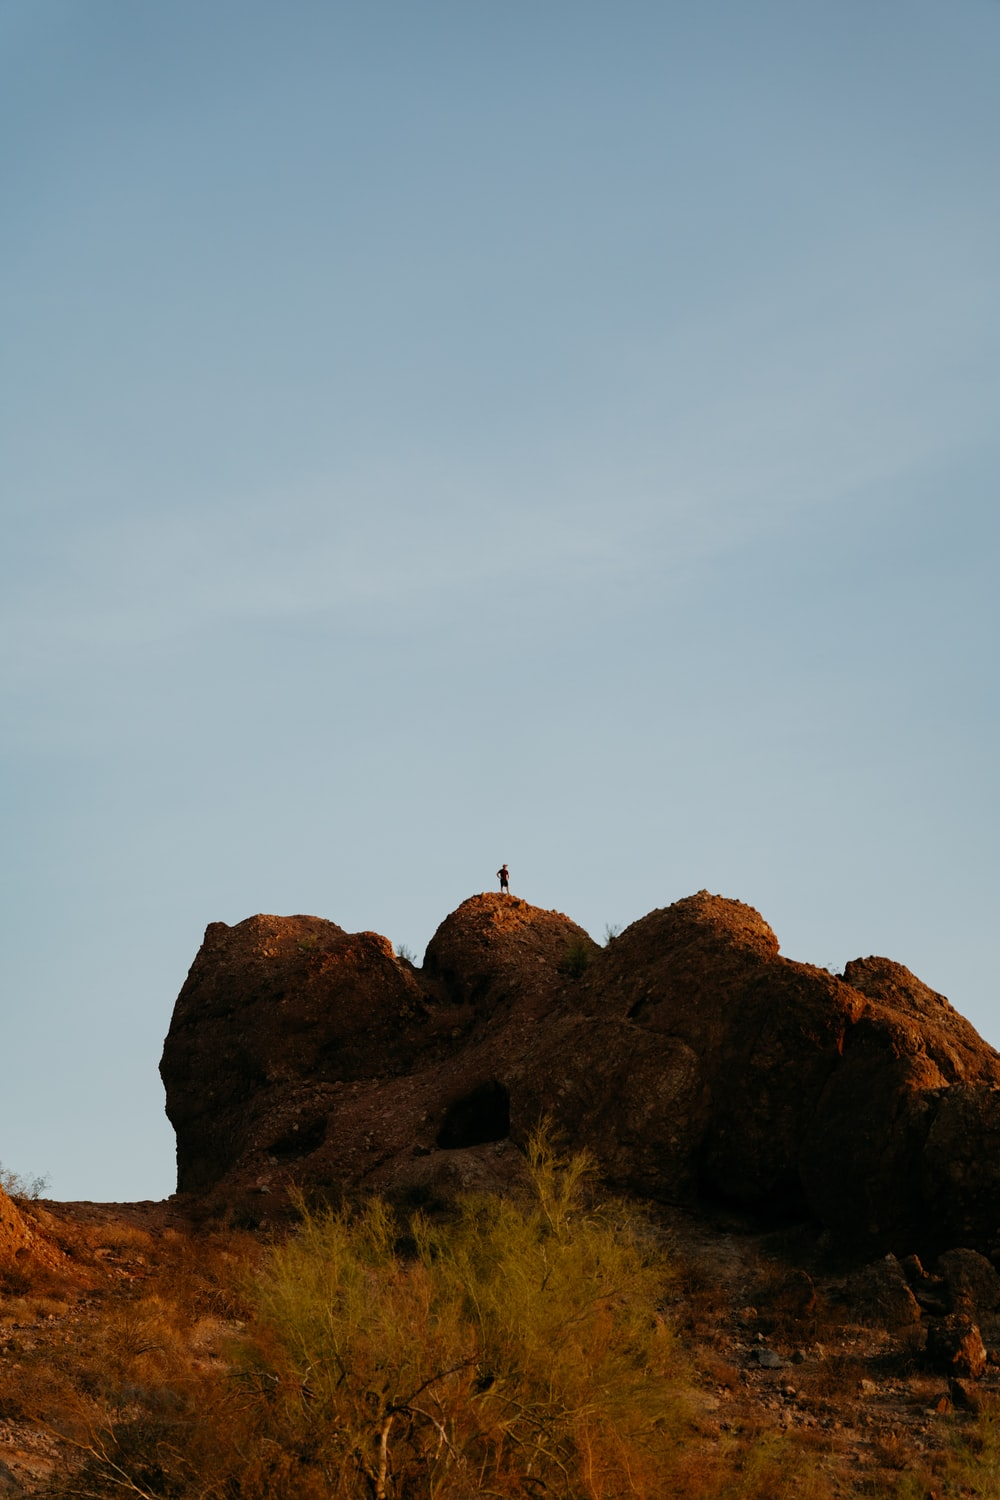 person standing on brown rock formation under white sky during daytime